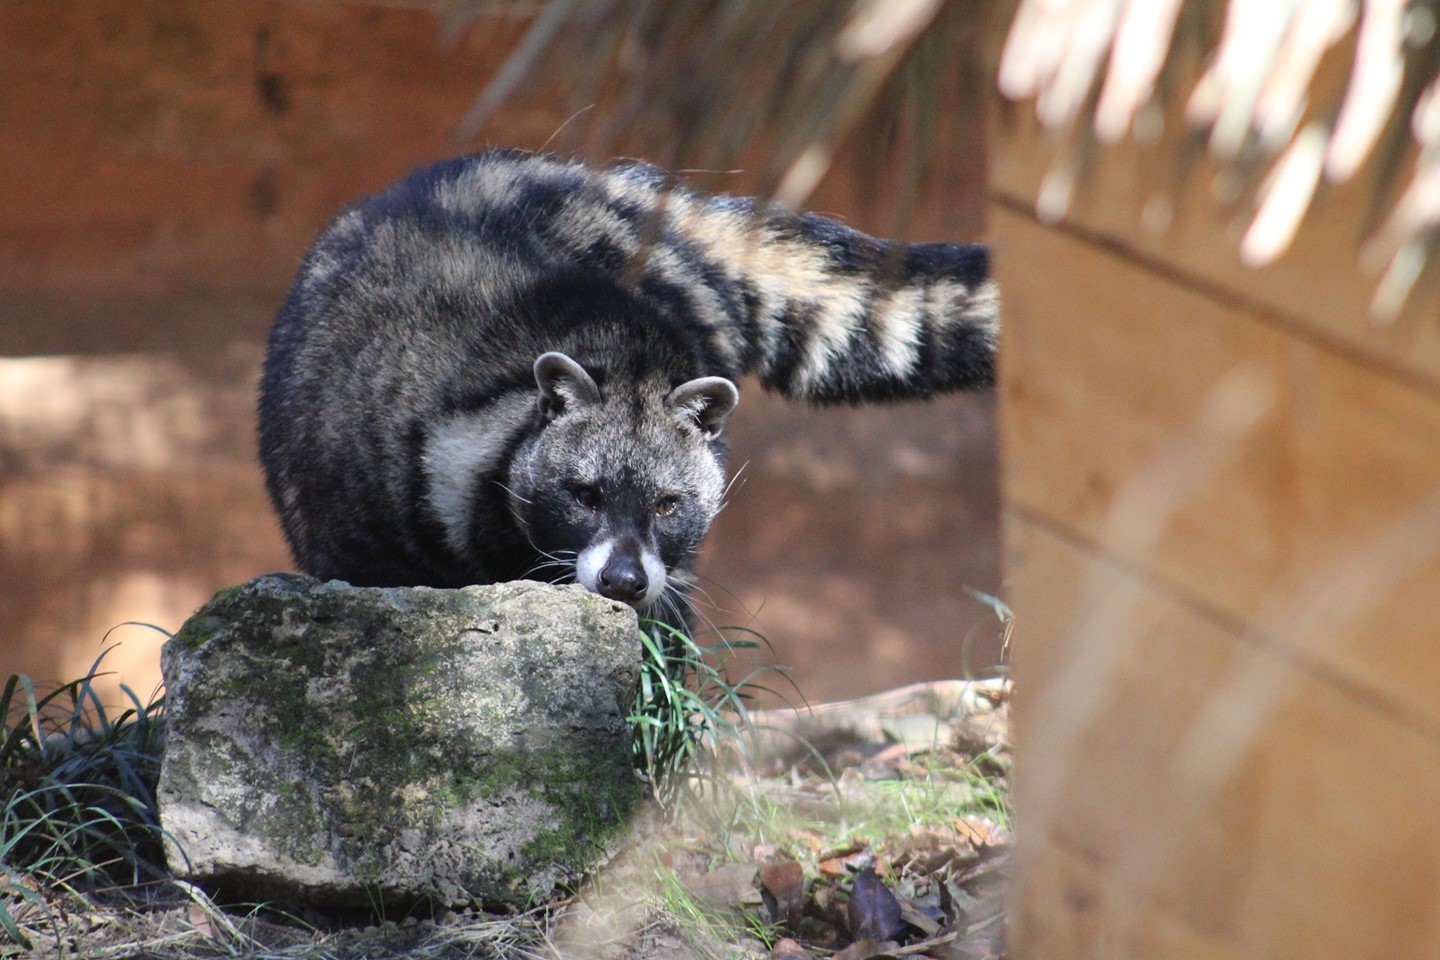 Have you ever seen an African Civet in person? No? Well, don't worry, we can change that! Stop by the…